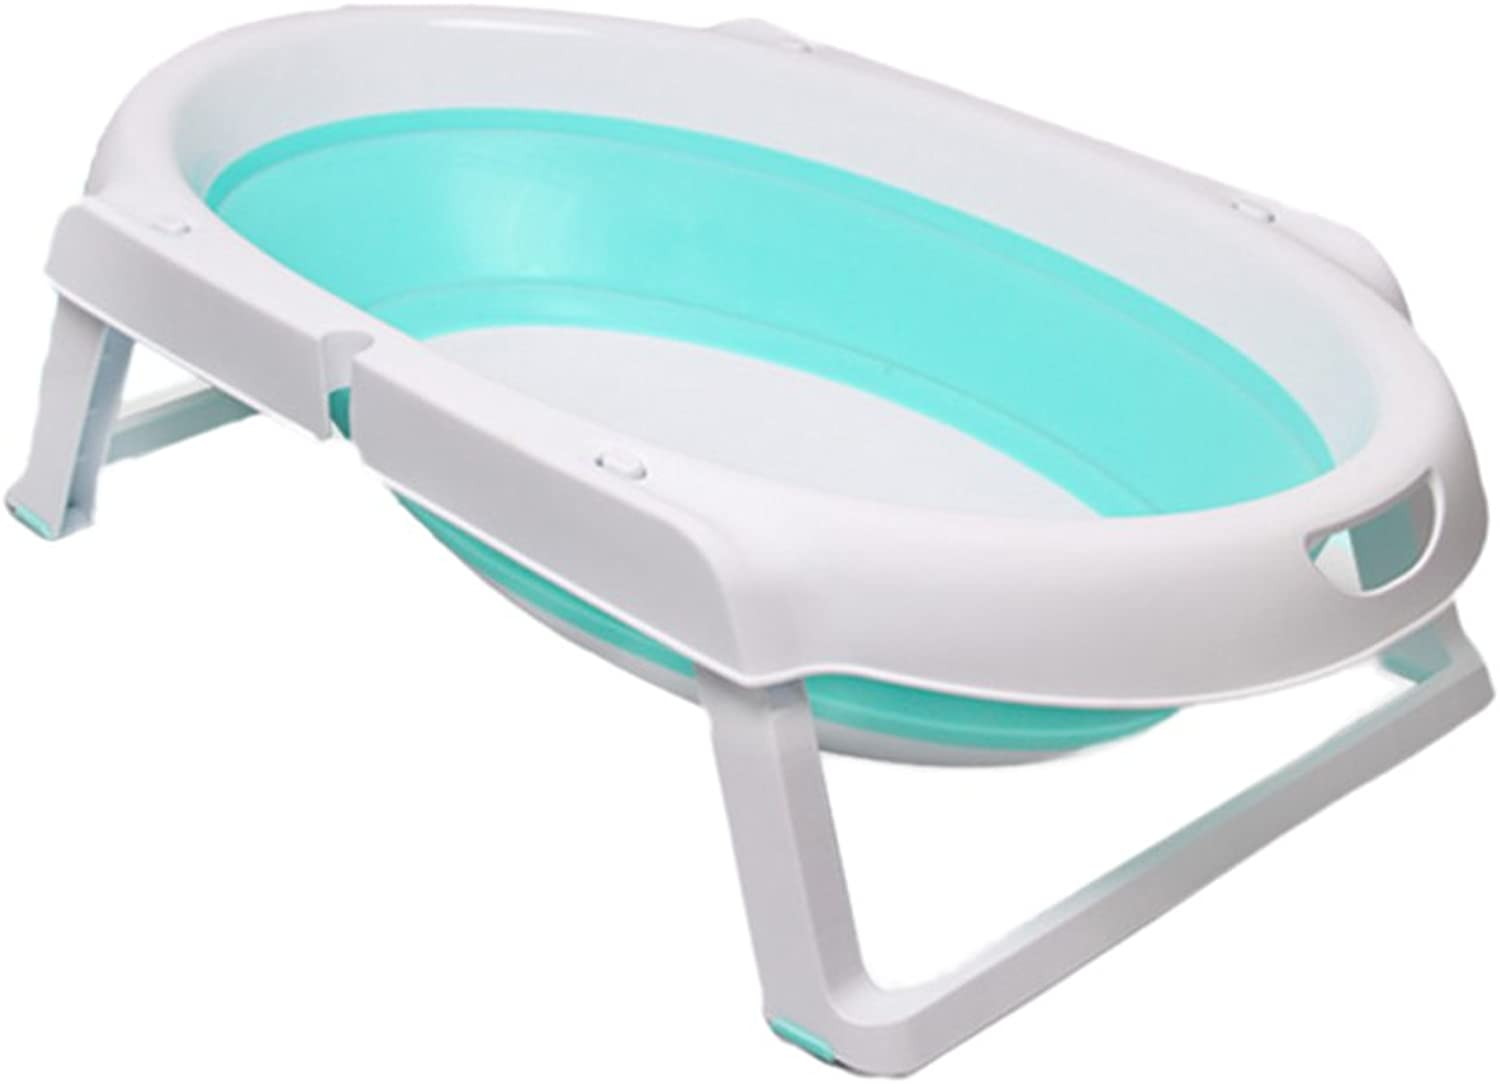 Baby folding portable bathtub baby can sit portable shower basin tub